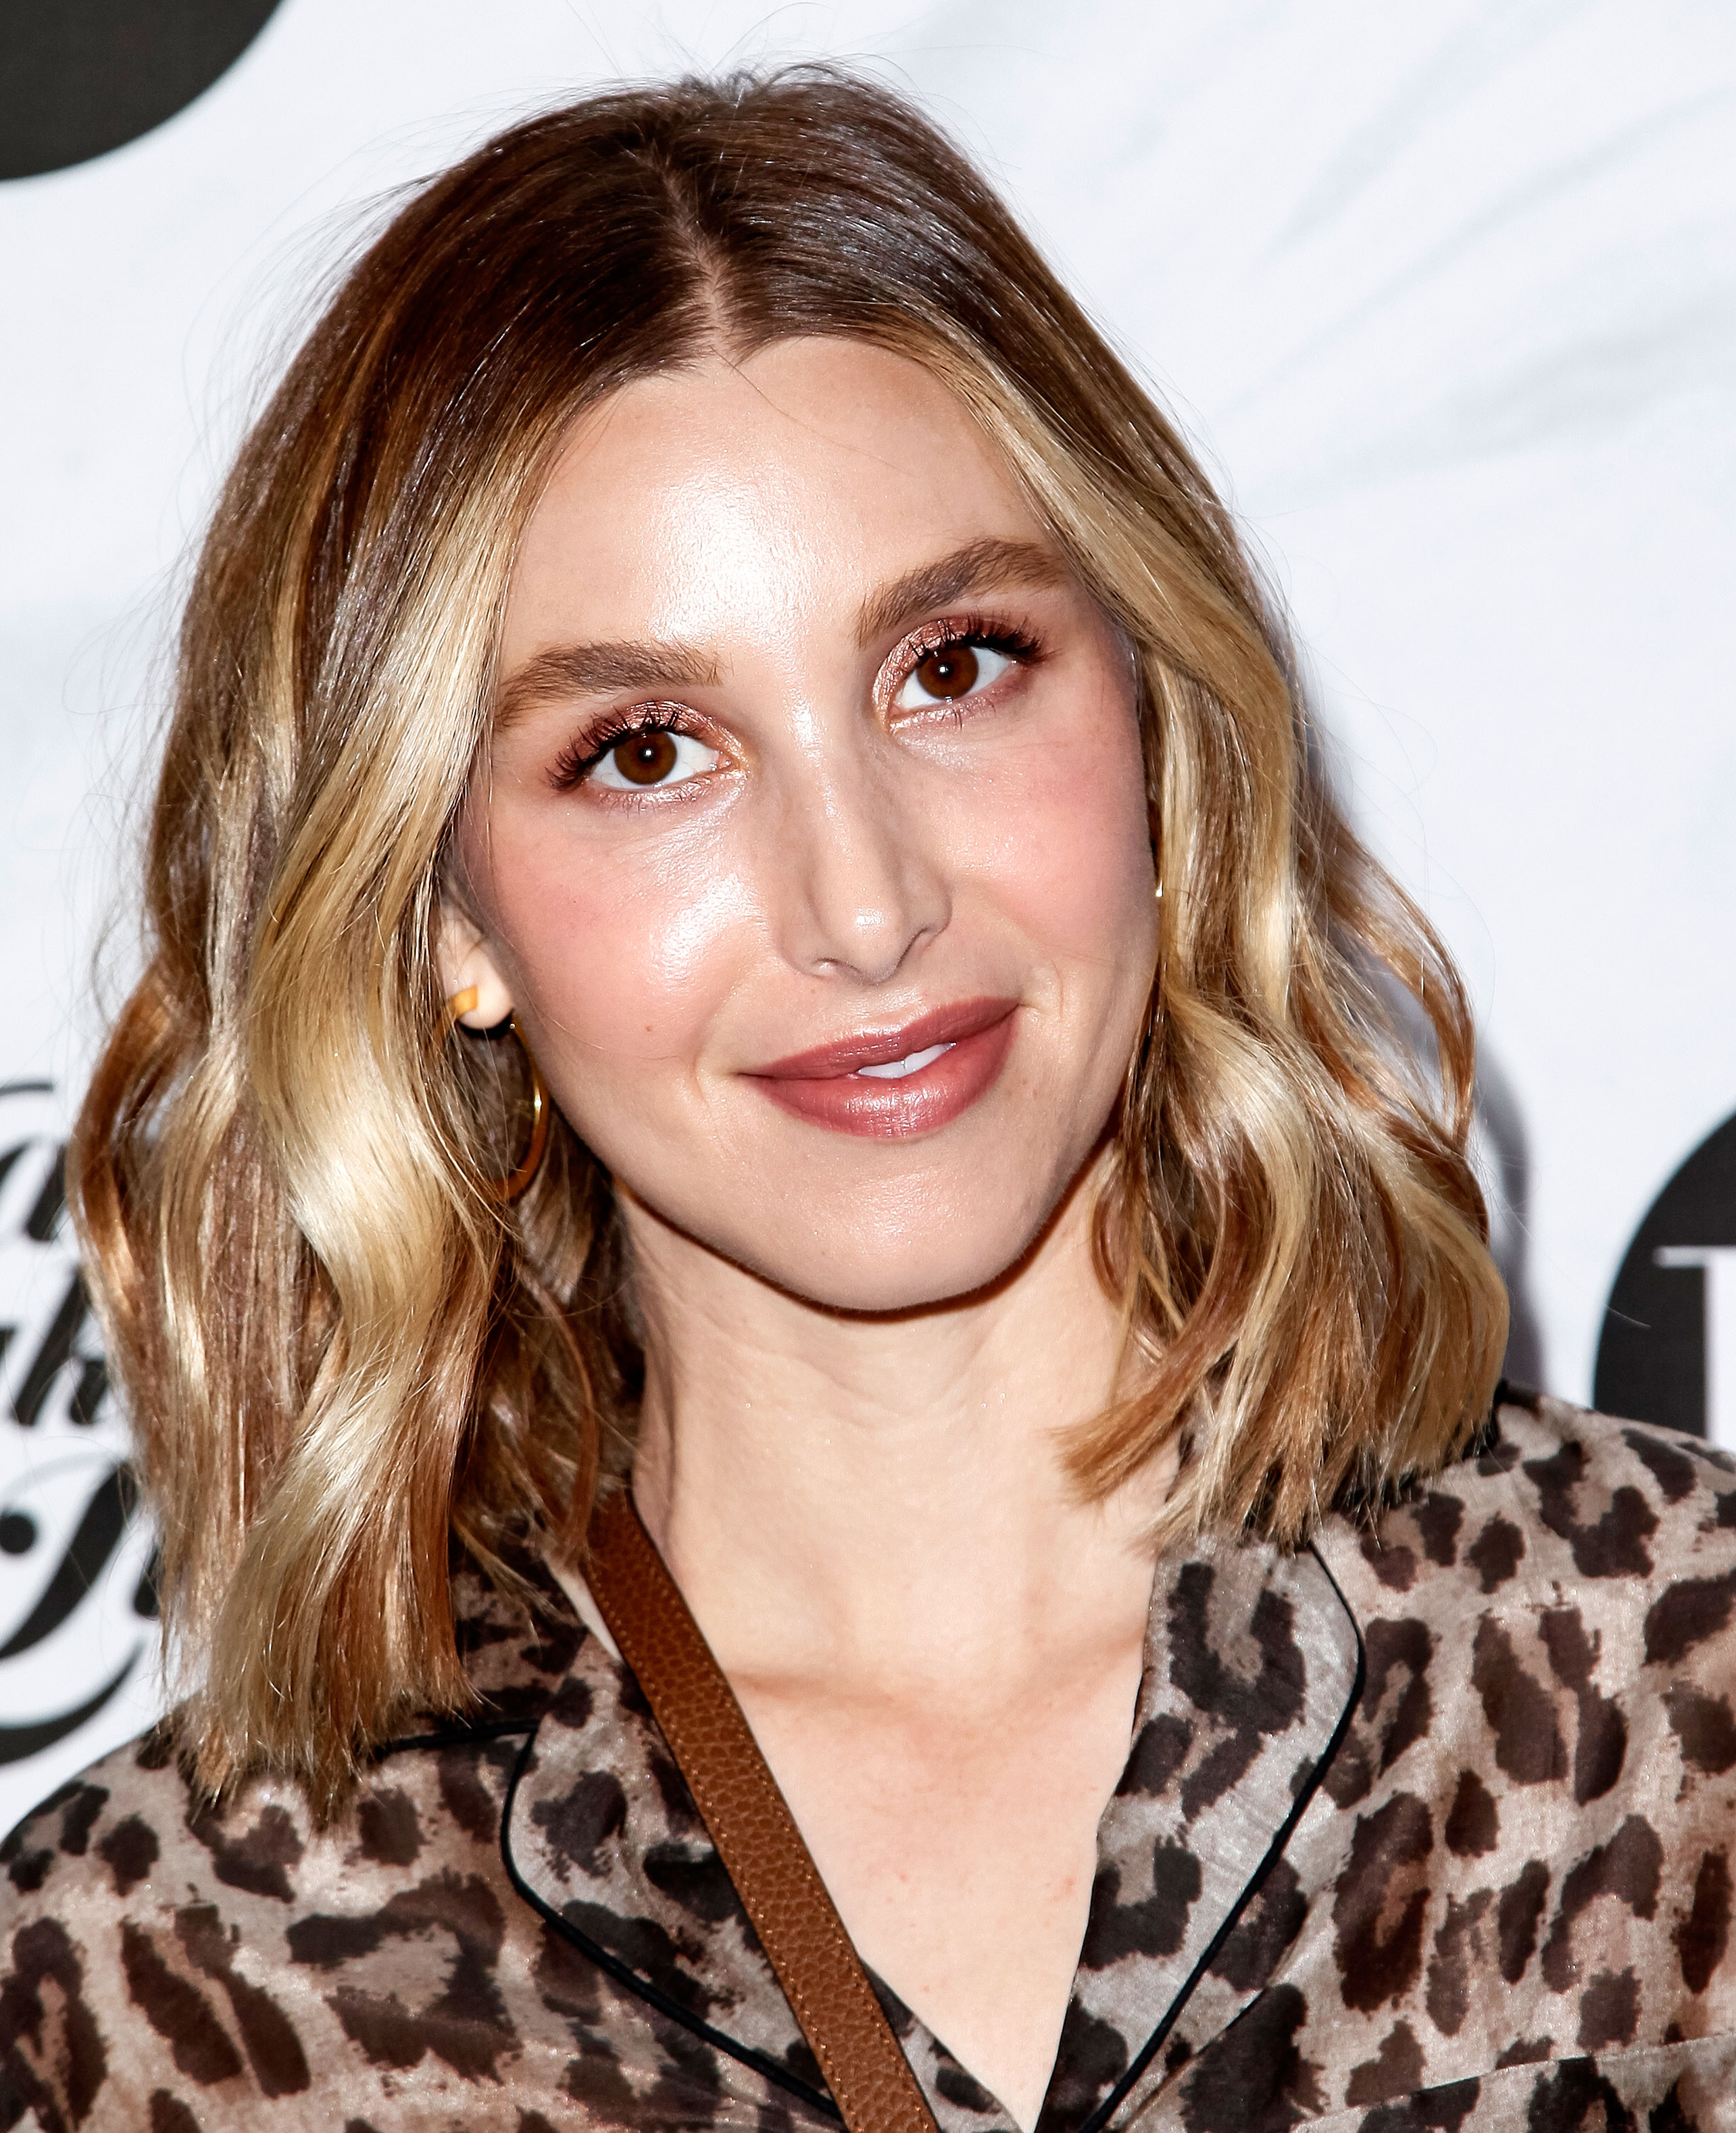 Whitney-Port-the-hills-gallery - Whitney's spinoff, which chronicled her time in New York City working for fashion designer Diane von Furstenberg , ran for two seasons. She debuted her own clothing line, Whitney Eve, in 2008.